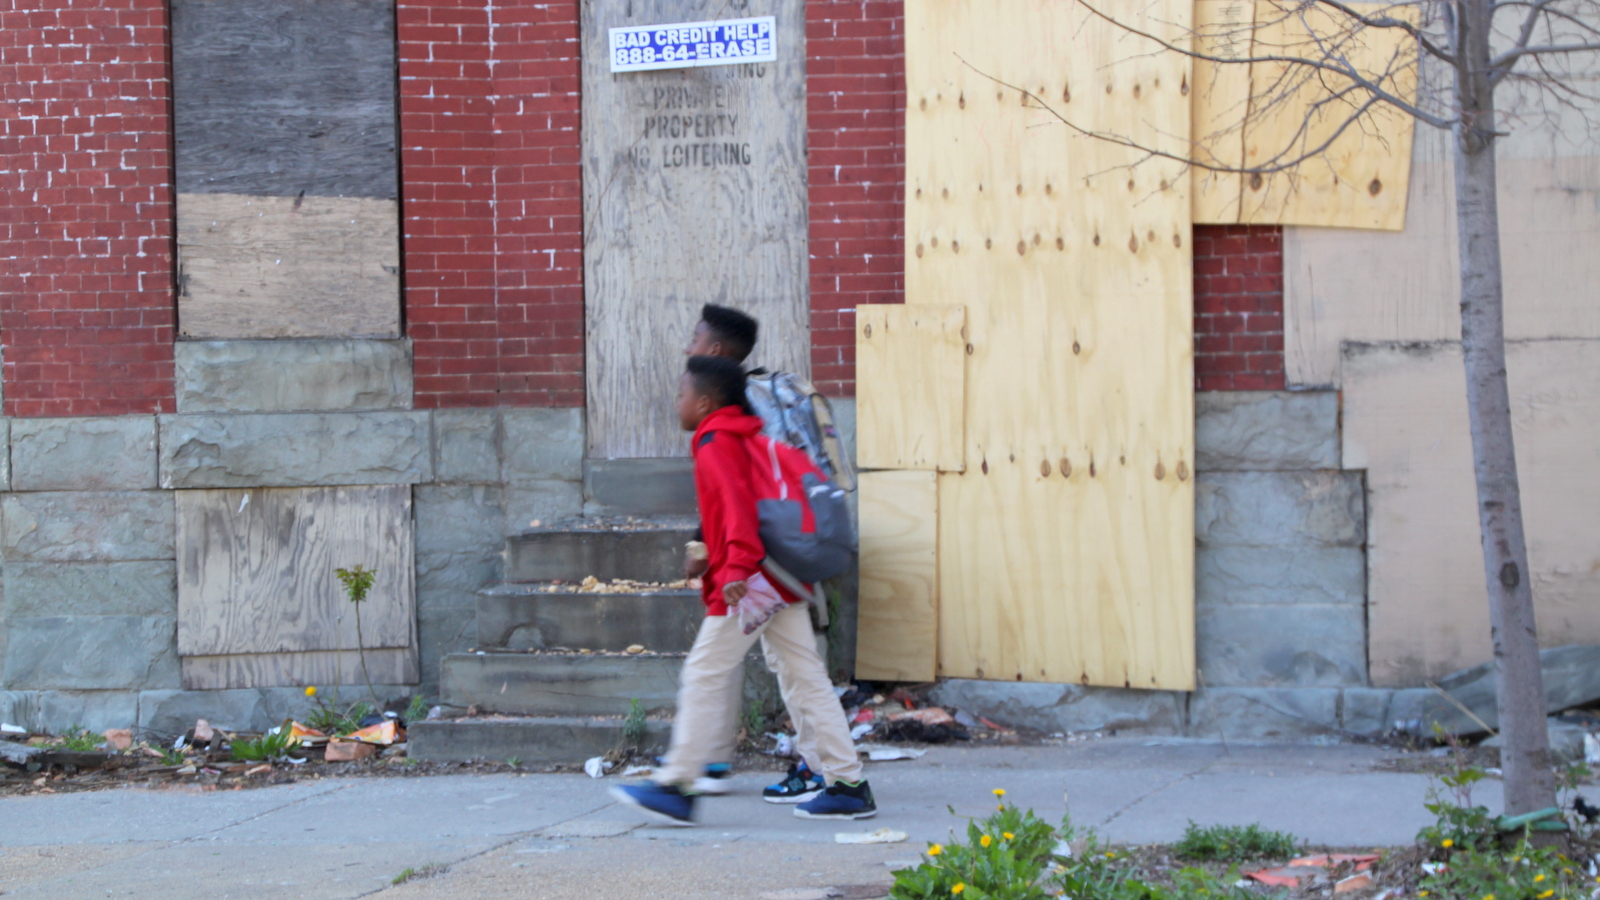 Data showed 722 vacants within a quarter-mile radius of one West Baltimore school. (Fern Shen)